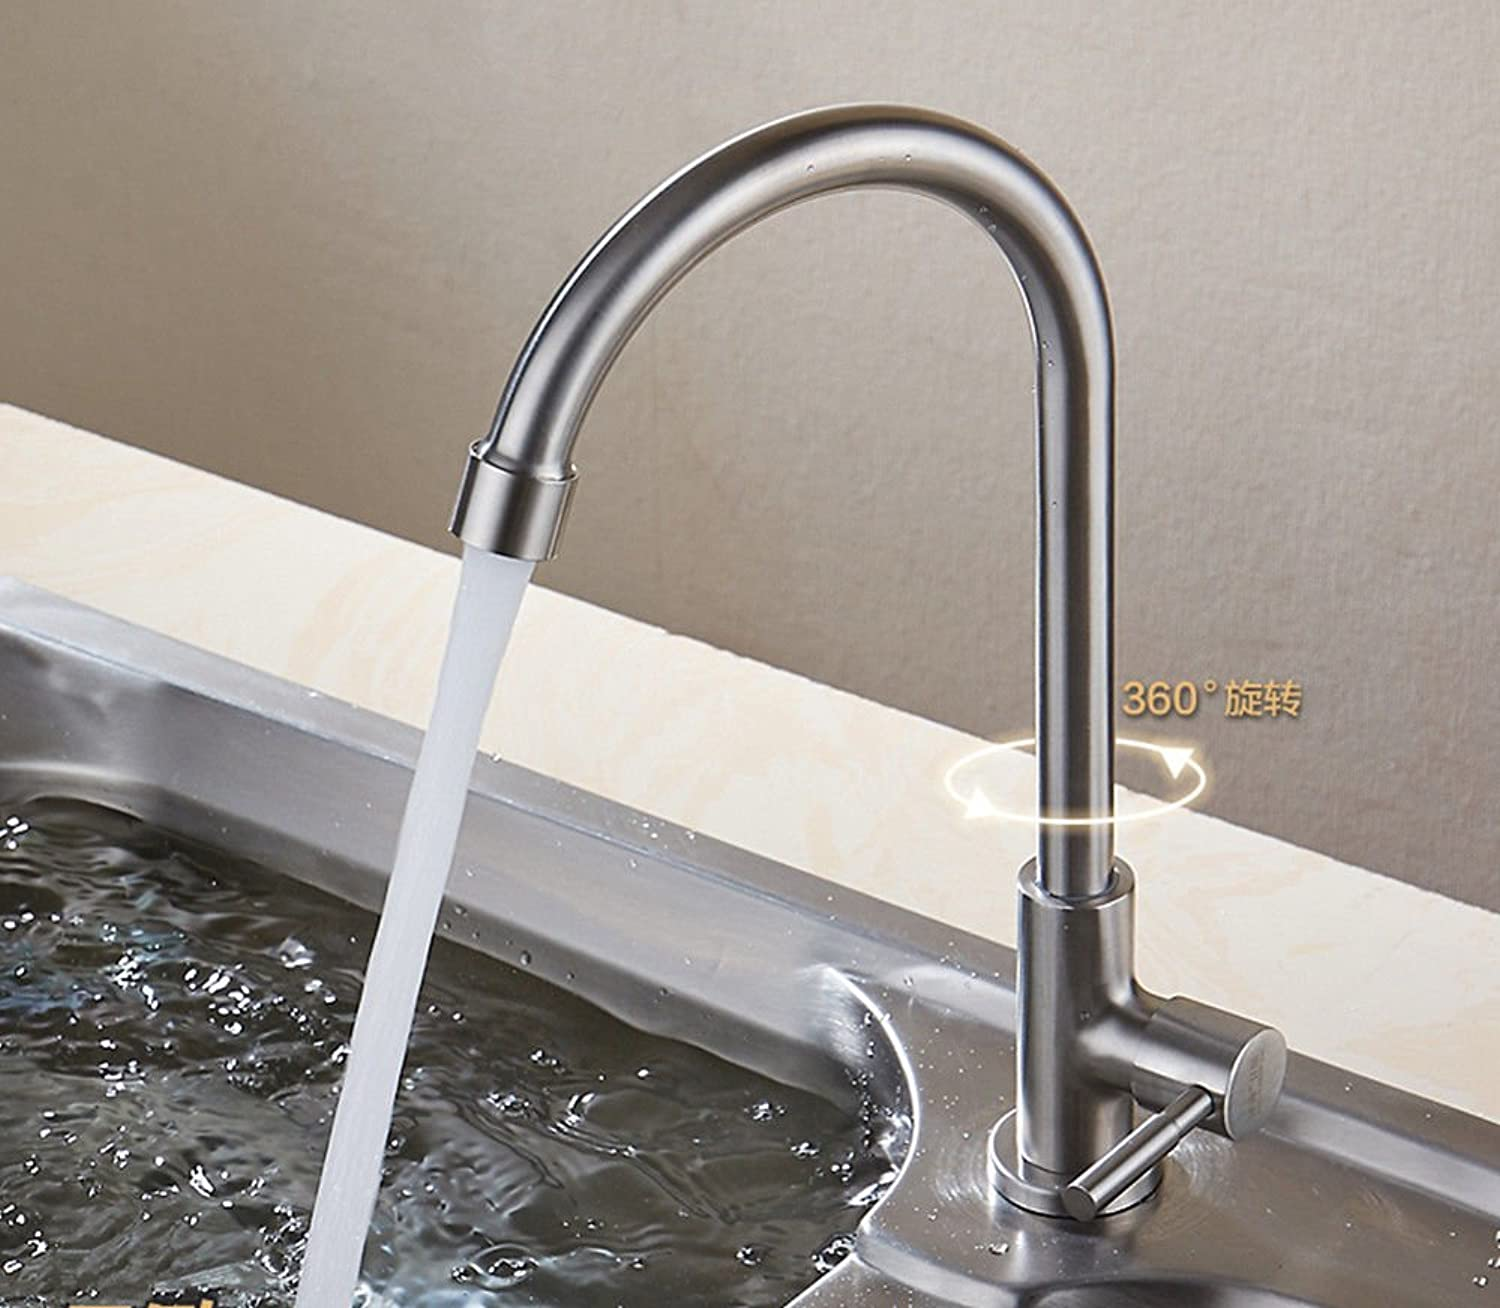 Lpophy Bathroom Sink Mixer Taps Faucet Bath Waterfall Cold and Hot Water Tap for Washroom Bathroom and Kitchen Hot and Cold Stainless Steel C Single Cold Bend